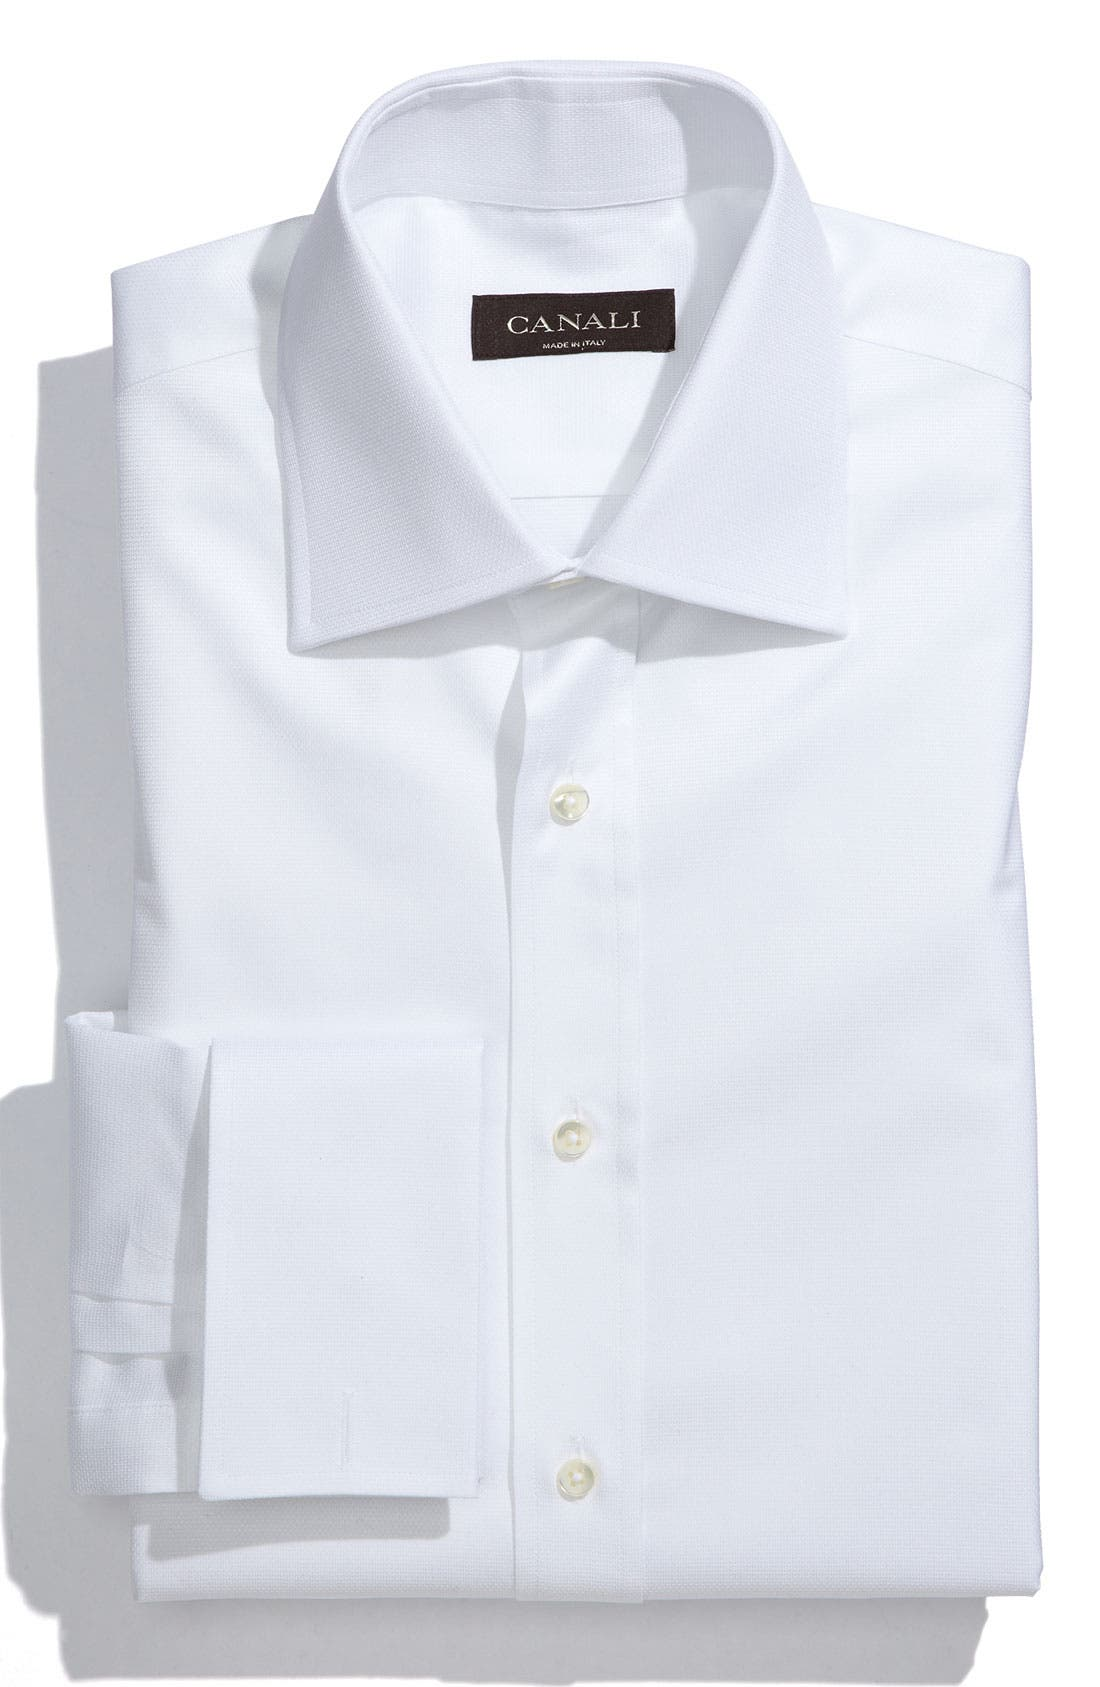 Regular Fit Dress Shirt,                         Main,                         color, 100